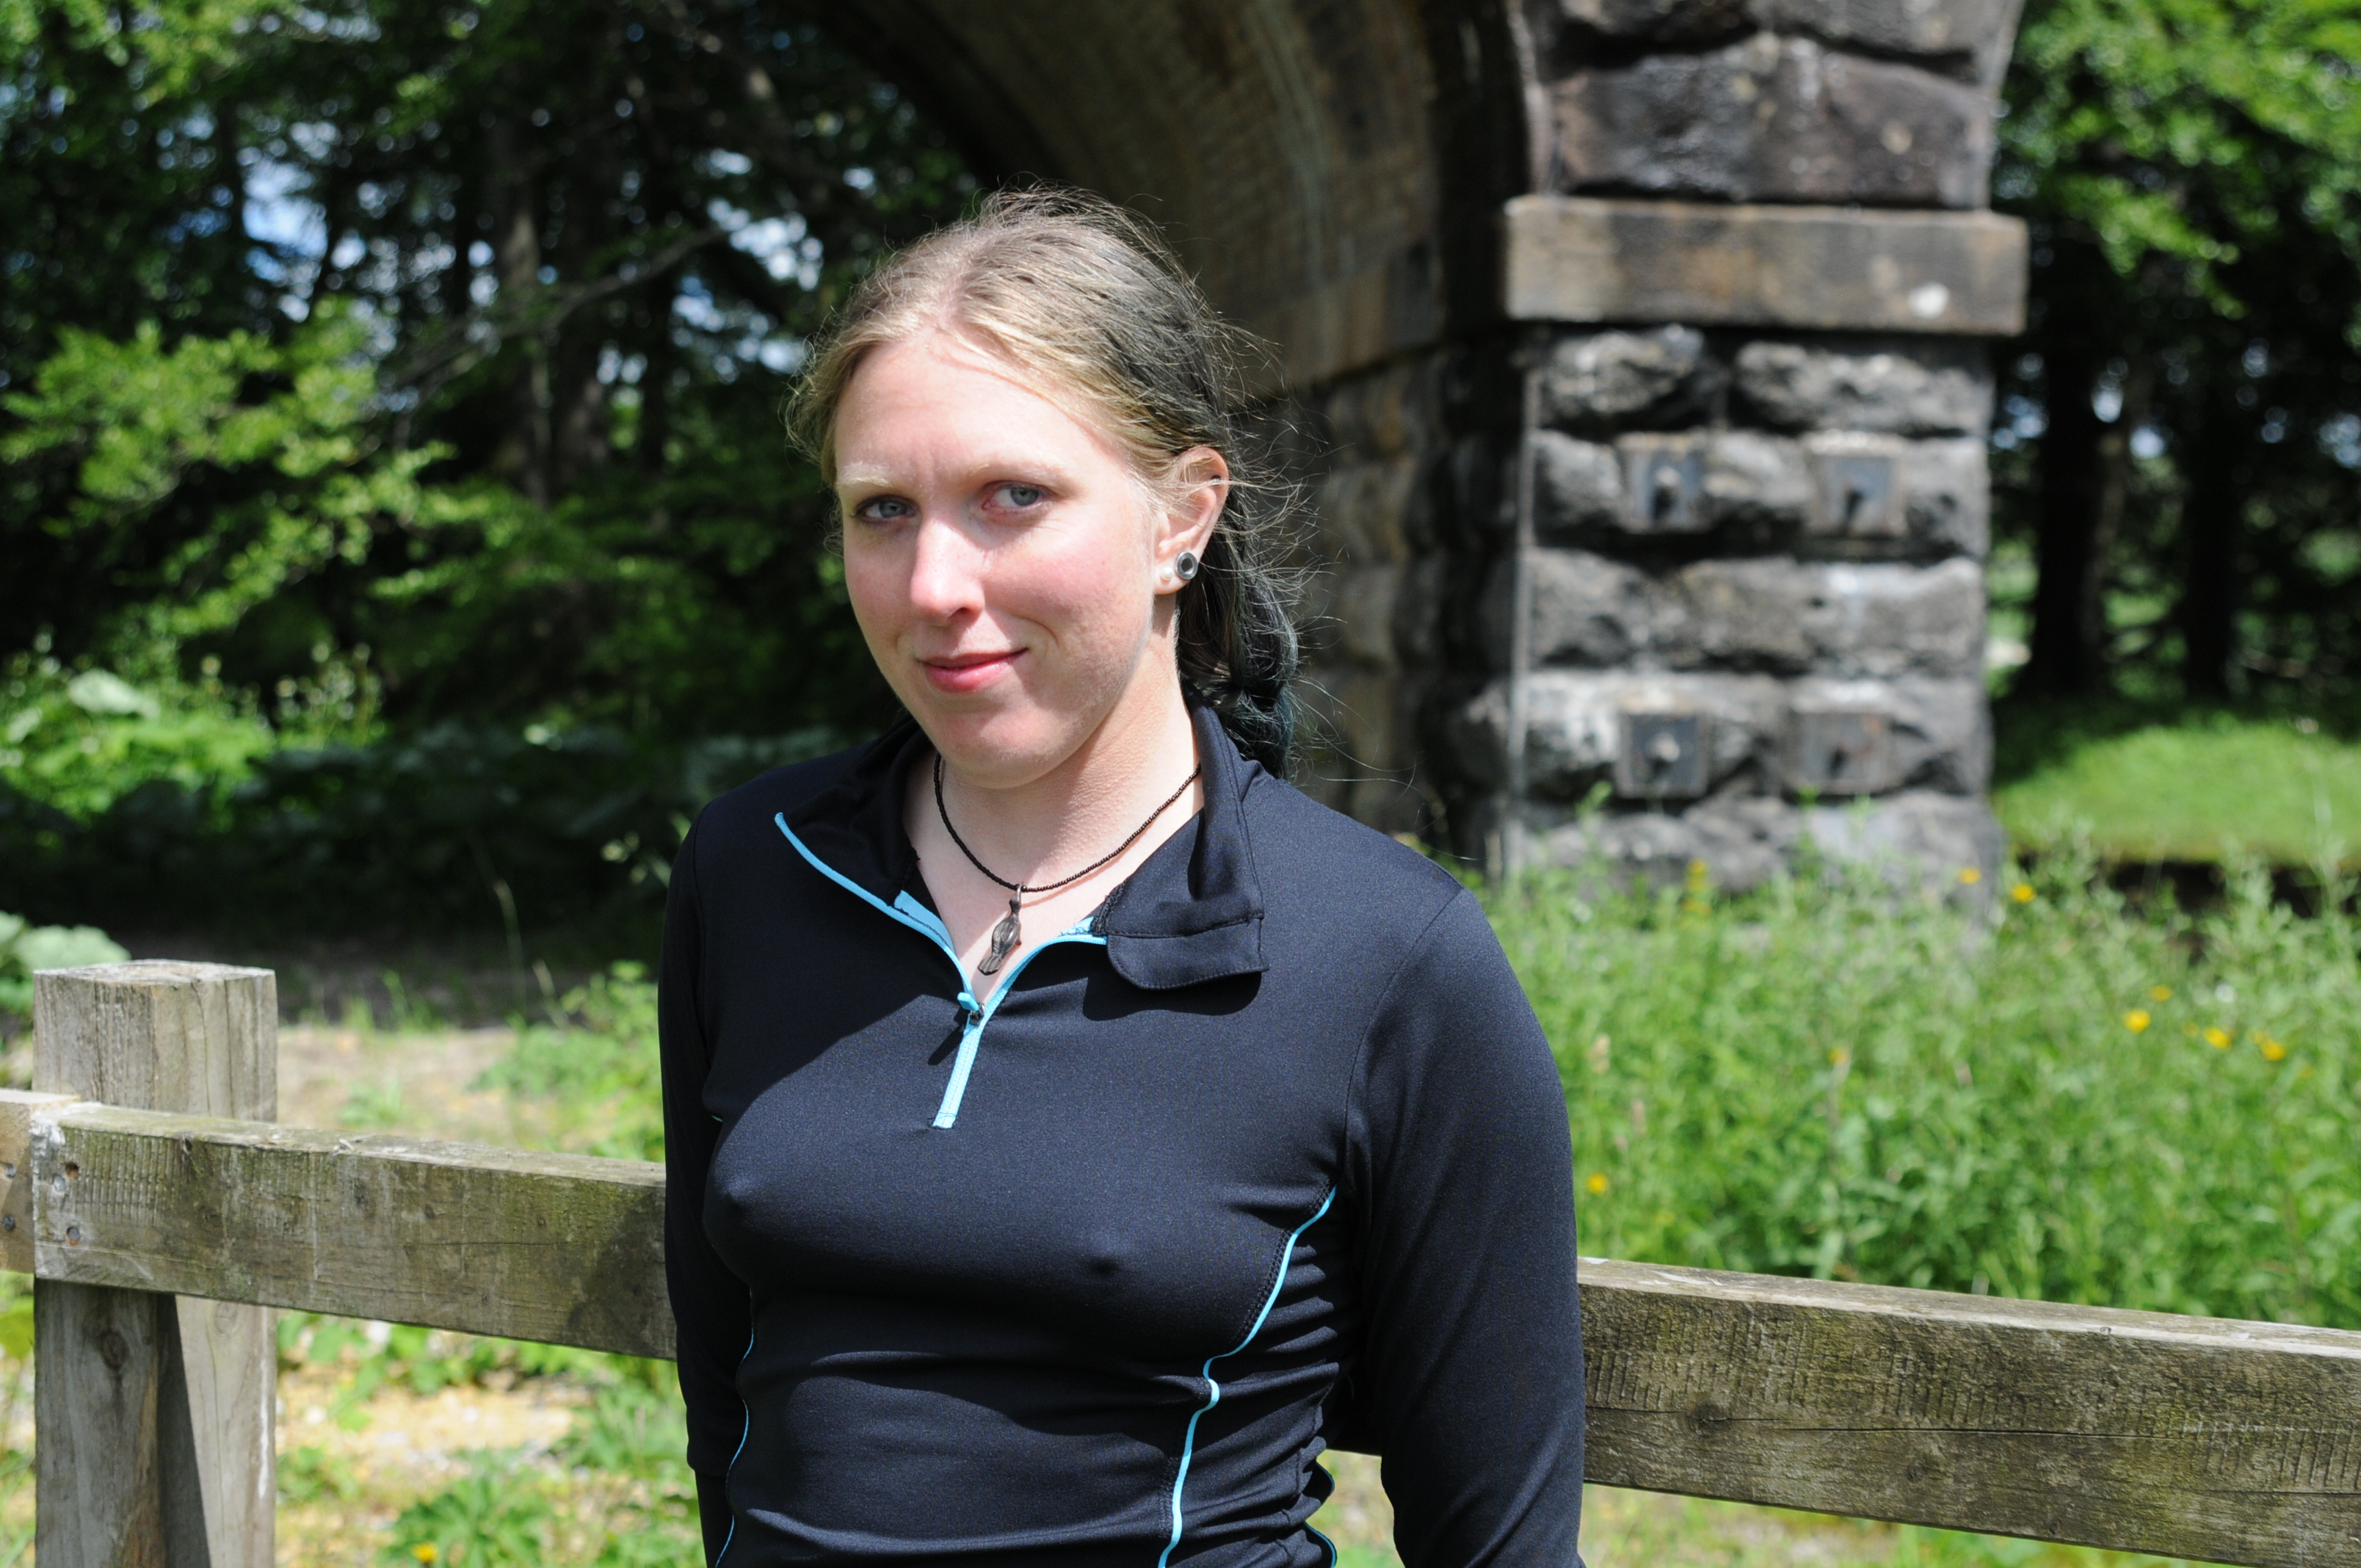 the watery workout - purity goes swimming in a ladies running outfit